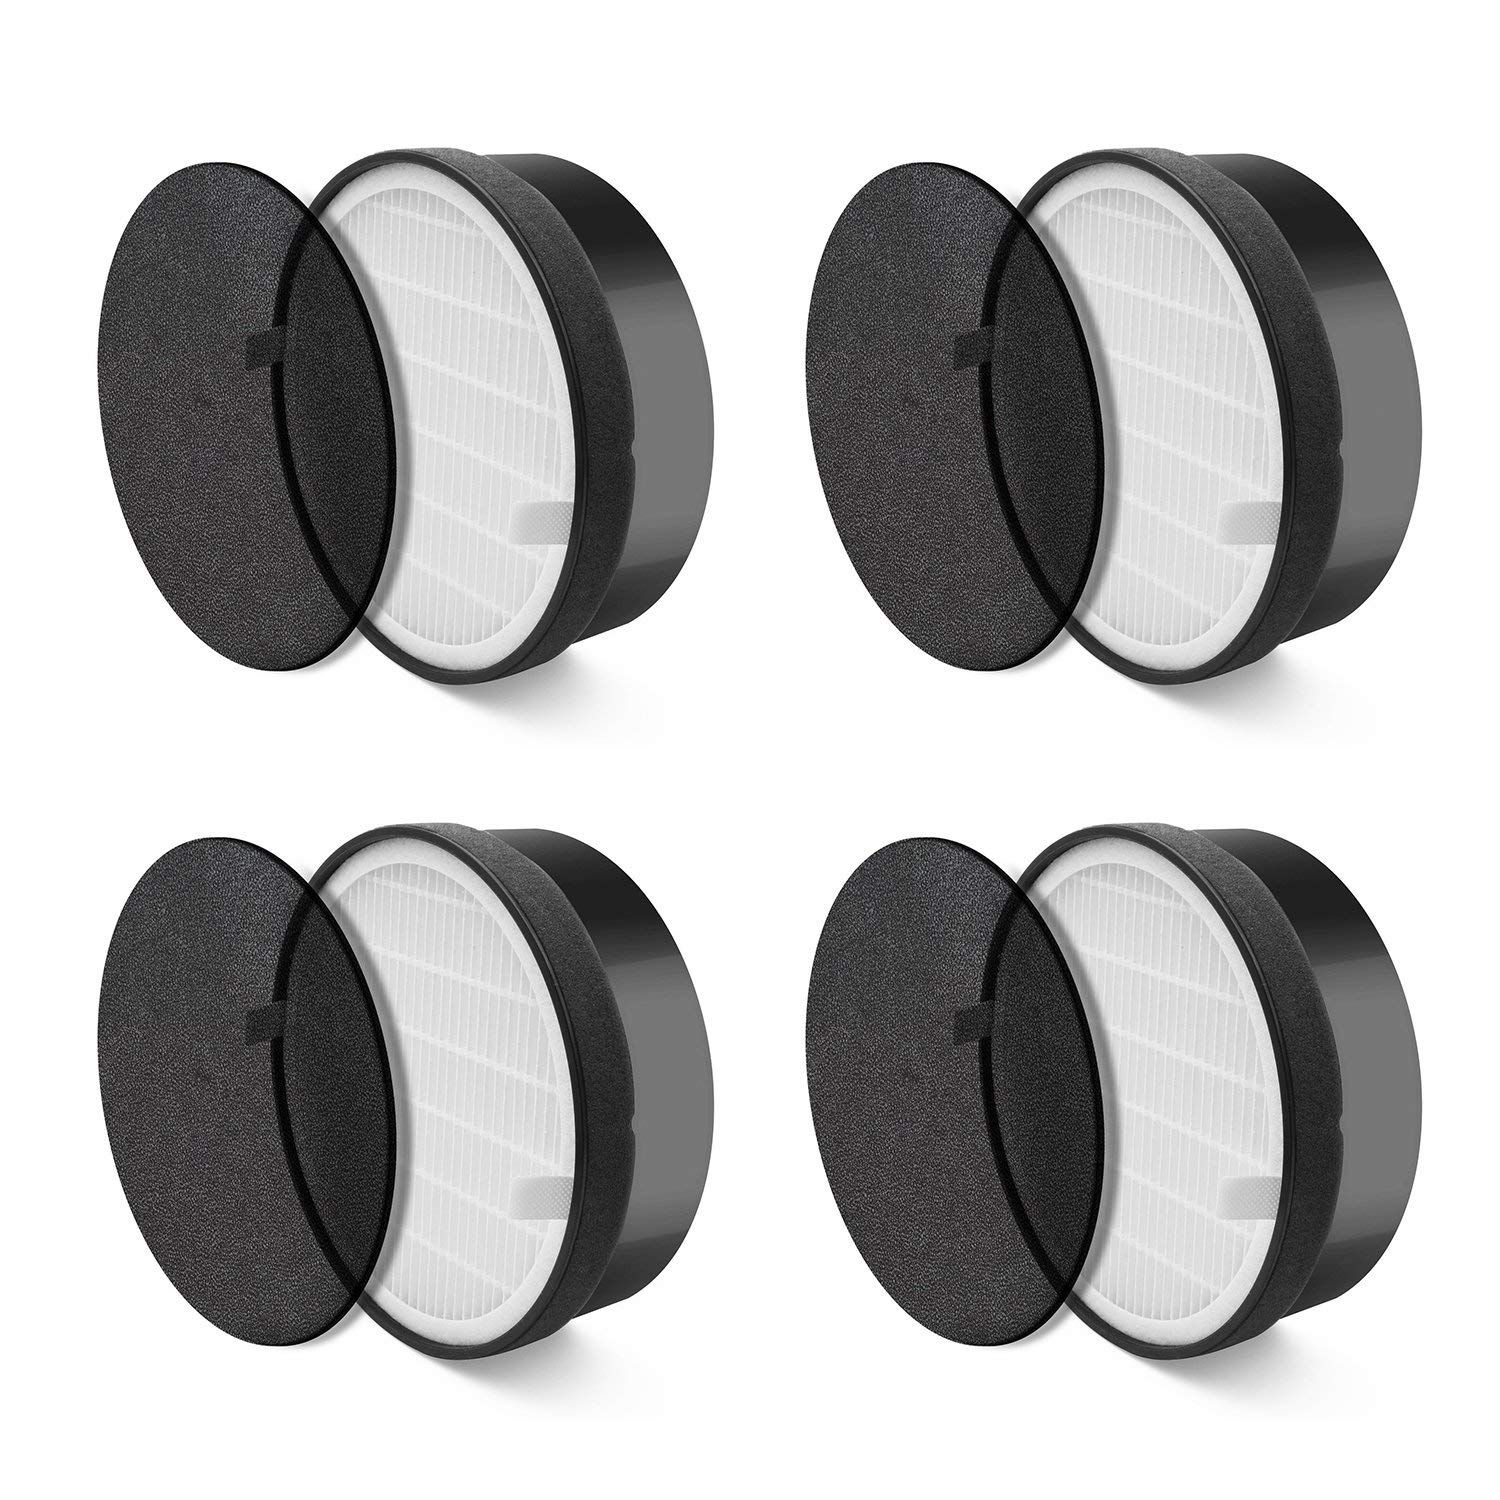 Air Purifier LV-H132 Replacement Filter (4 Pack) True HEPA/Activated Carbon Filter  Fine PreliminaryAir Purifier LV-H132 Replacement Filter (4 Pack) True HEPA/Activated Carbon Filter  Fine Preliminary